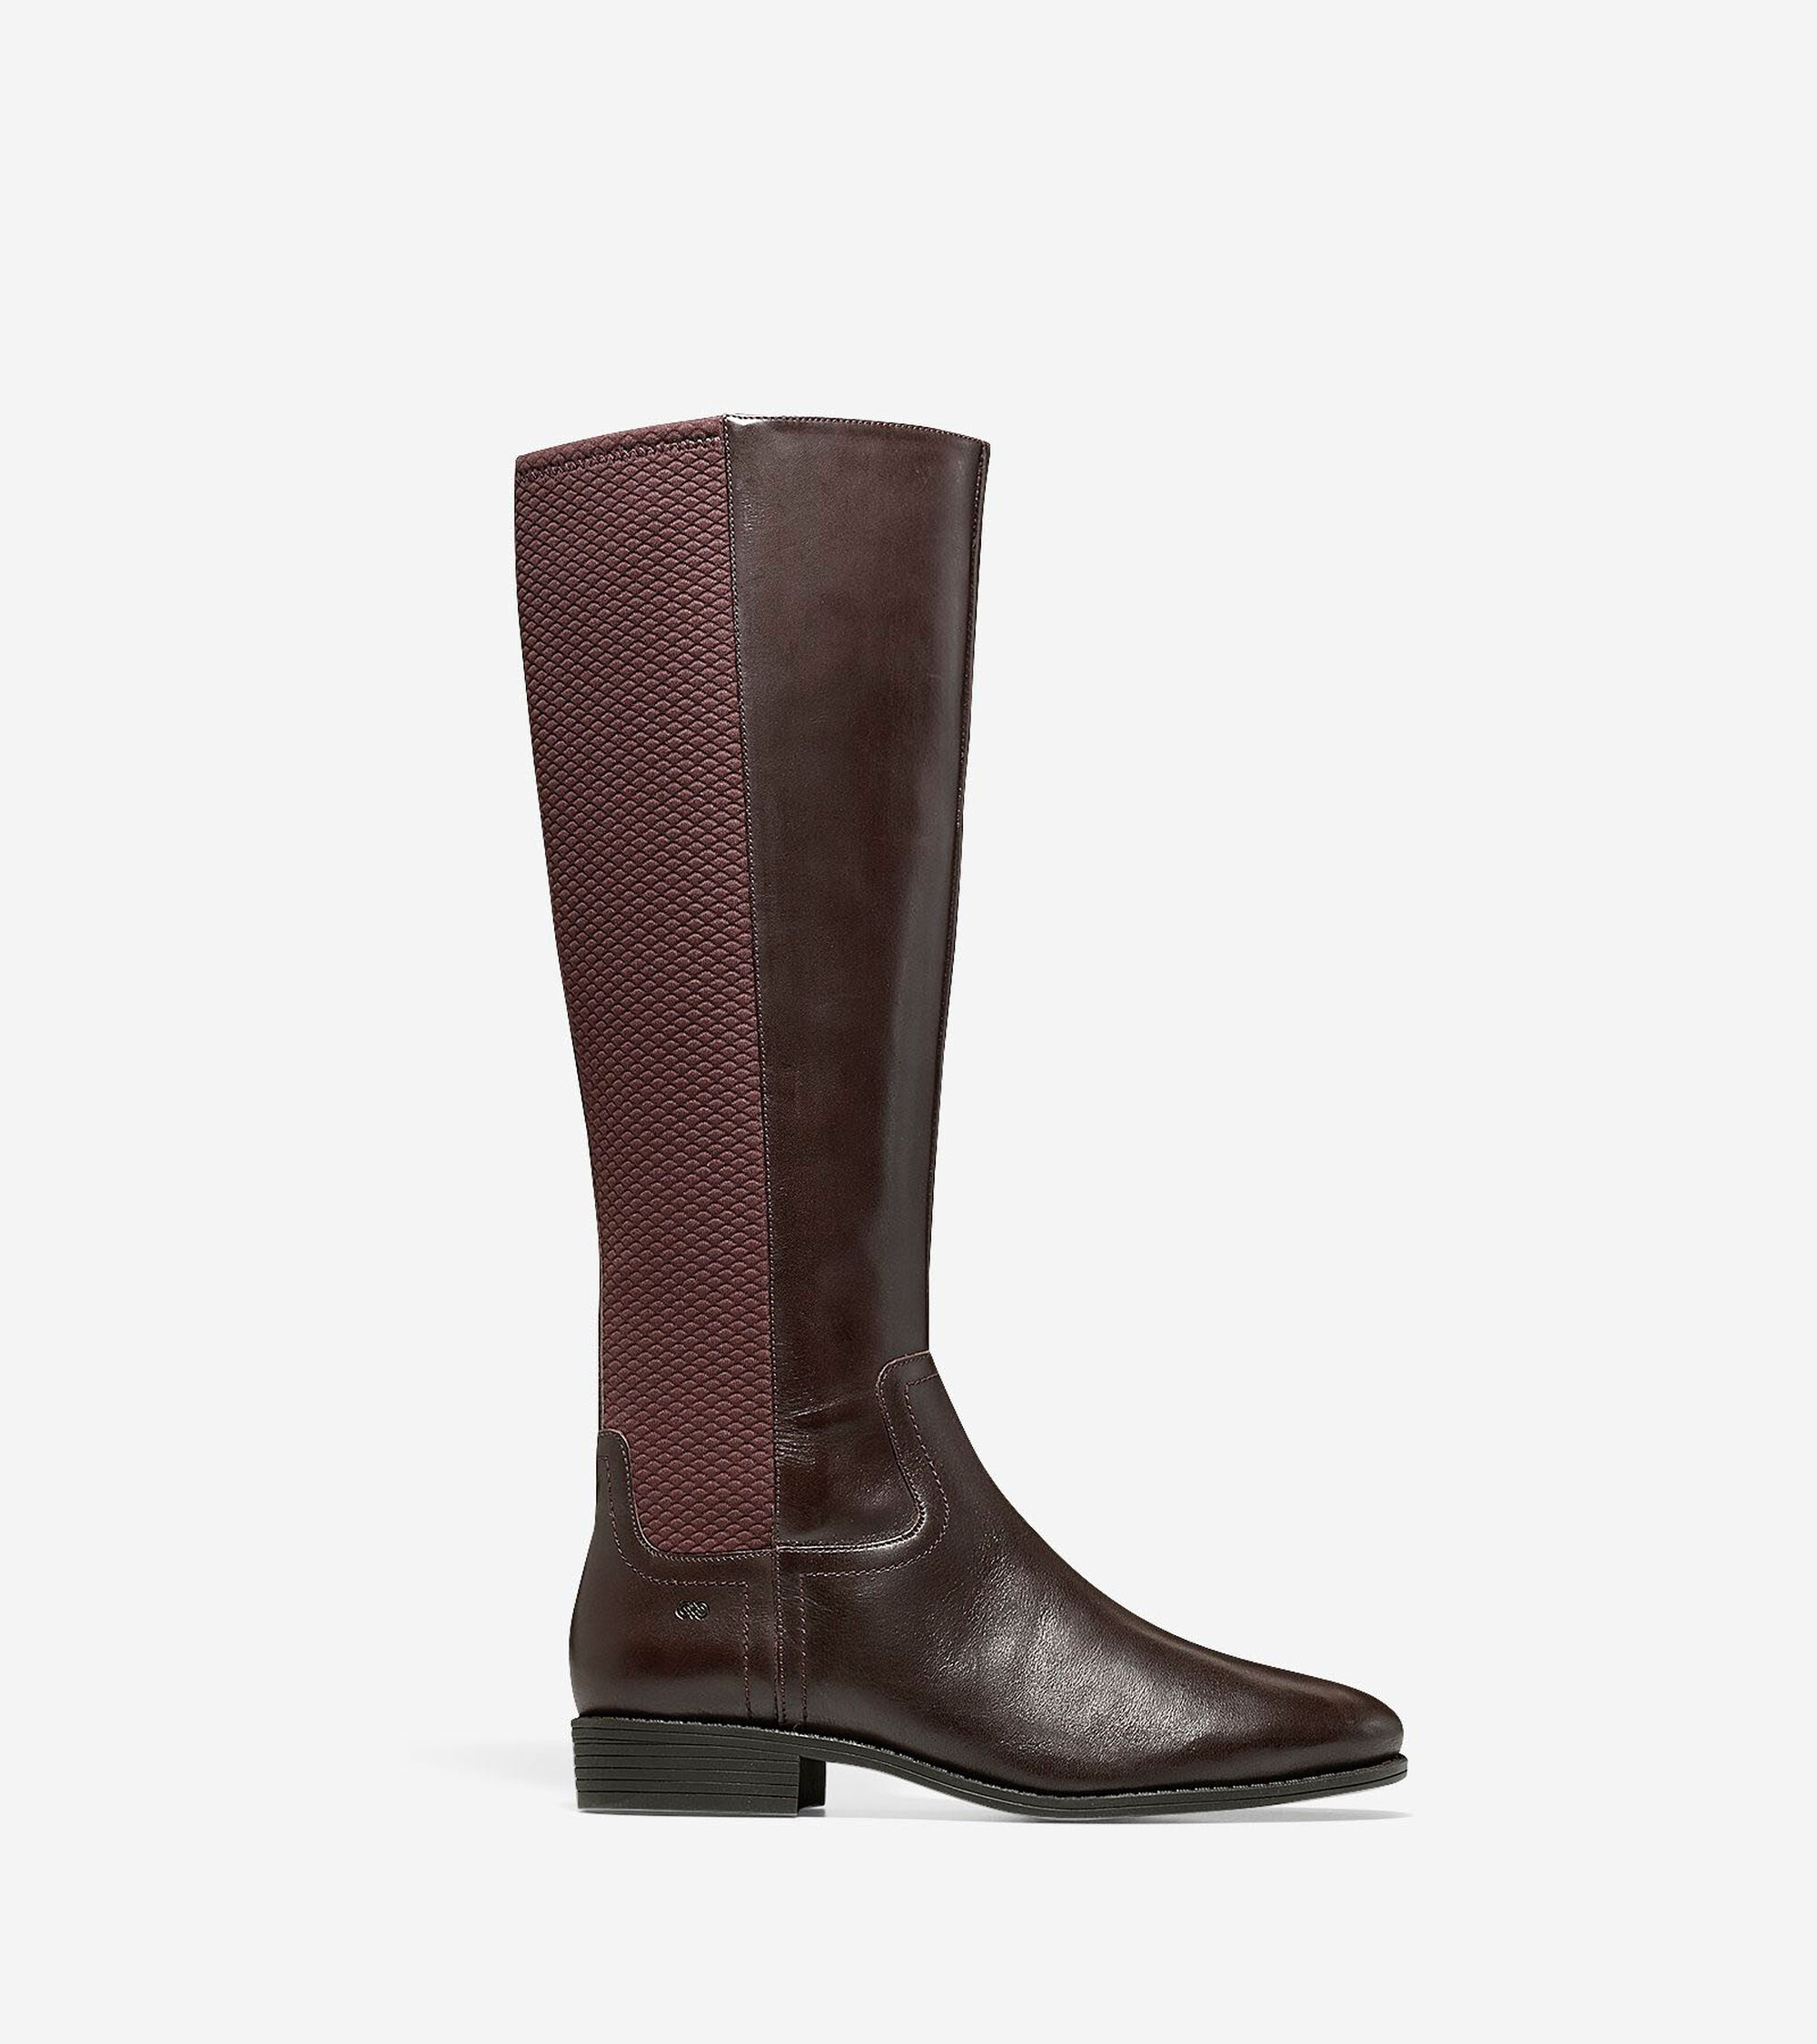 e9bc26a0f30 Women s Tilley Boots in Java Leather   Sale